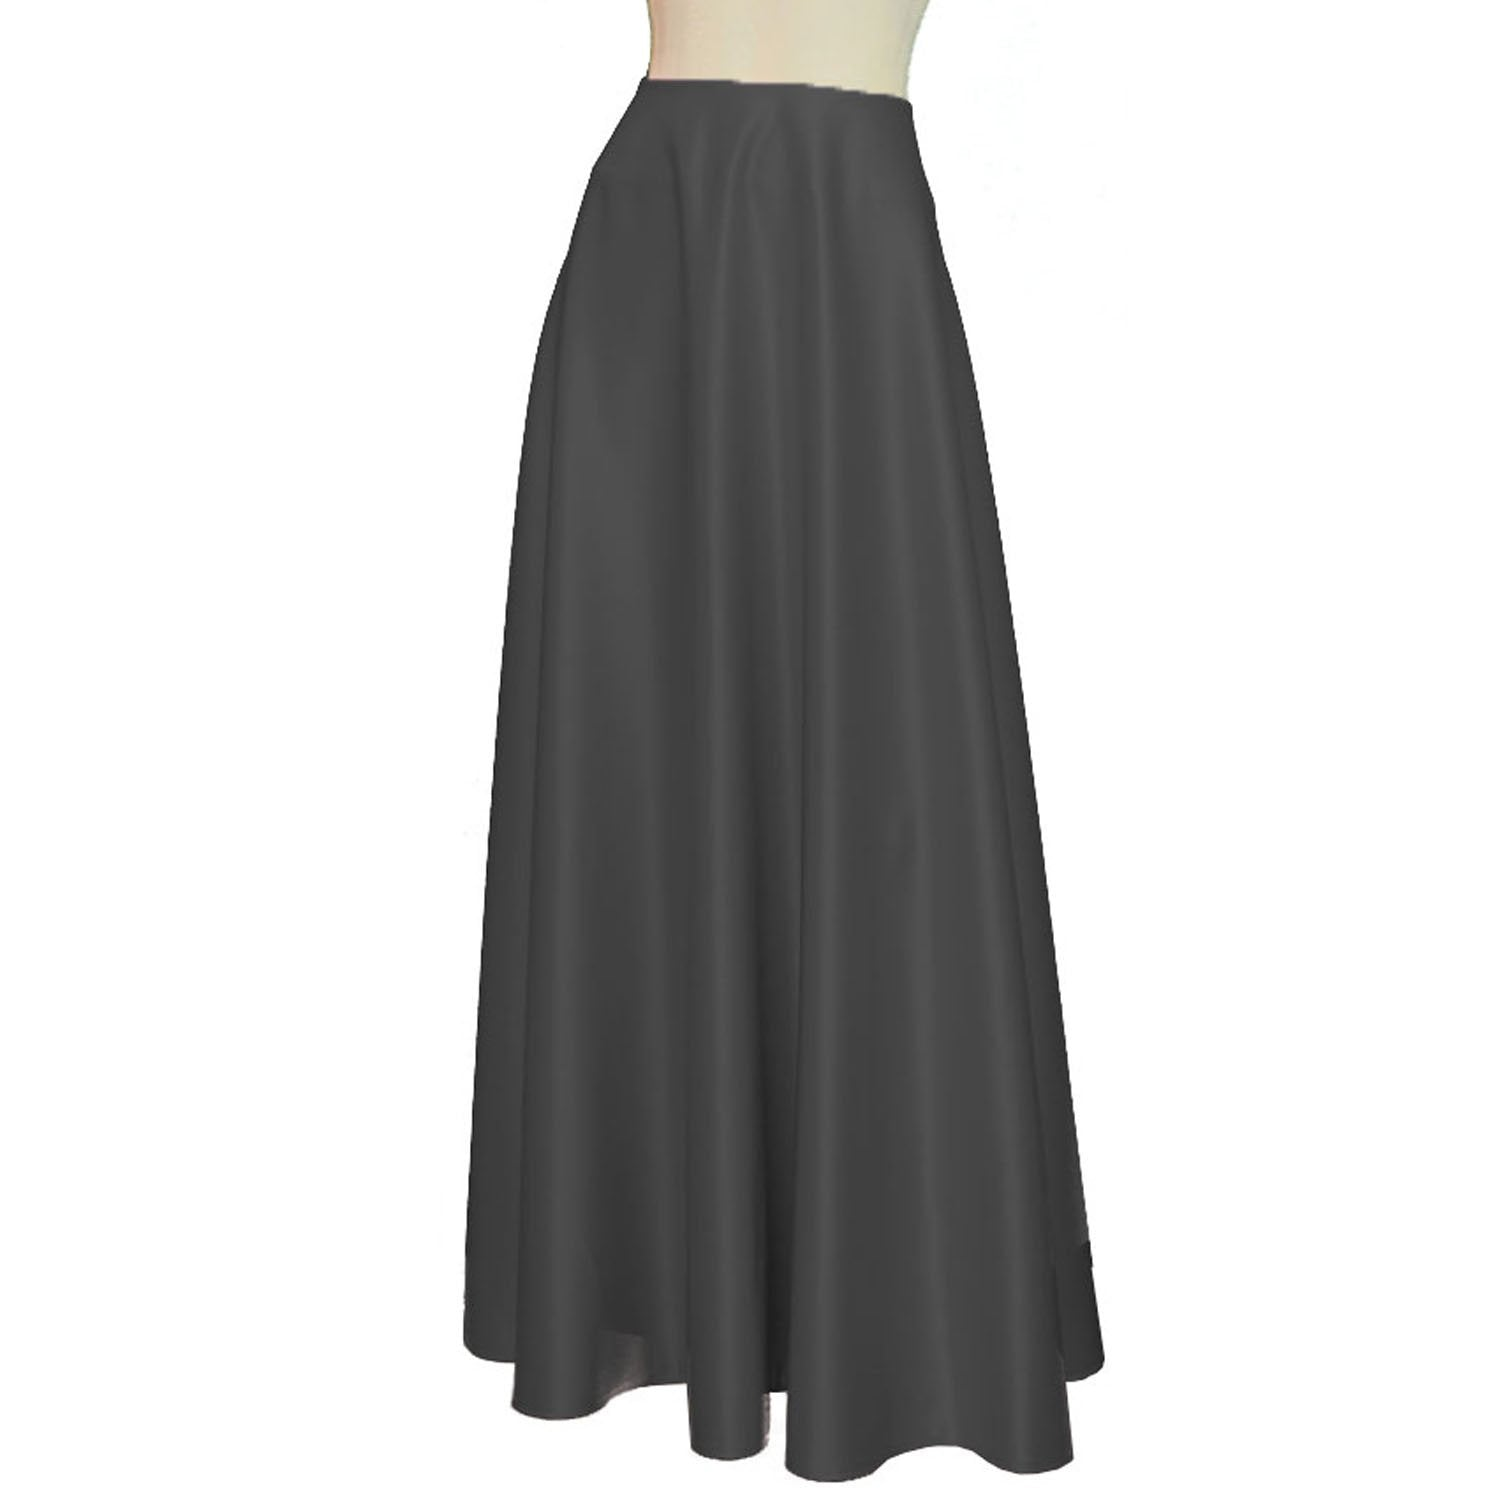 Maxi formal skirt Bridesmaid wedding long skirt Dark grey duchess floor length skirt